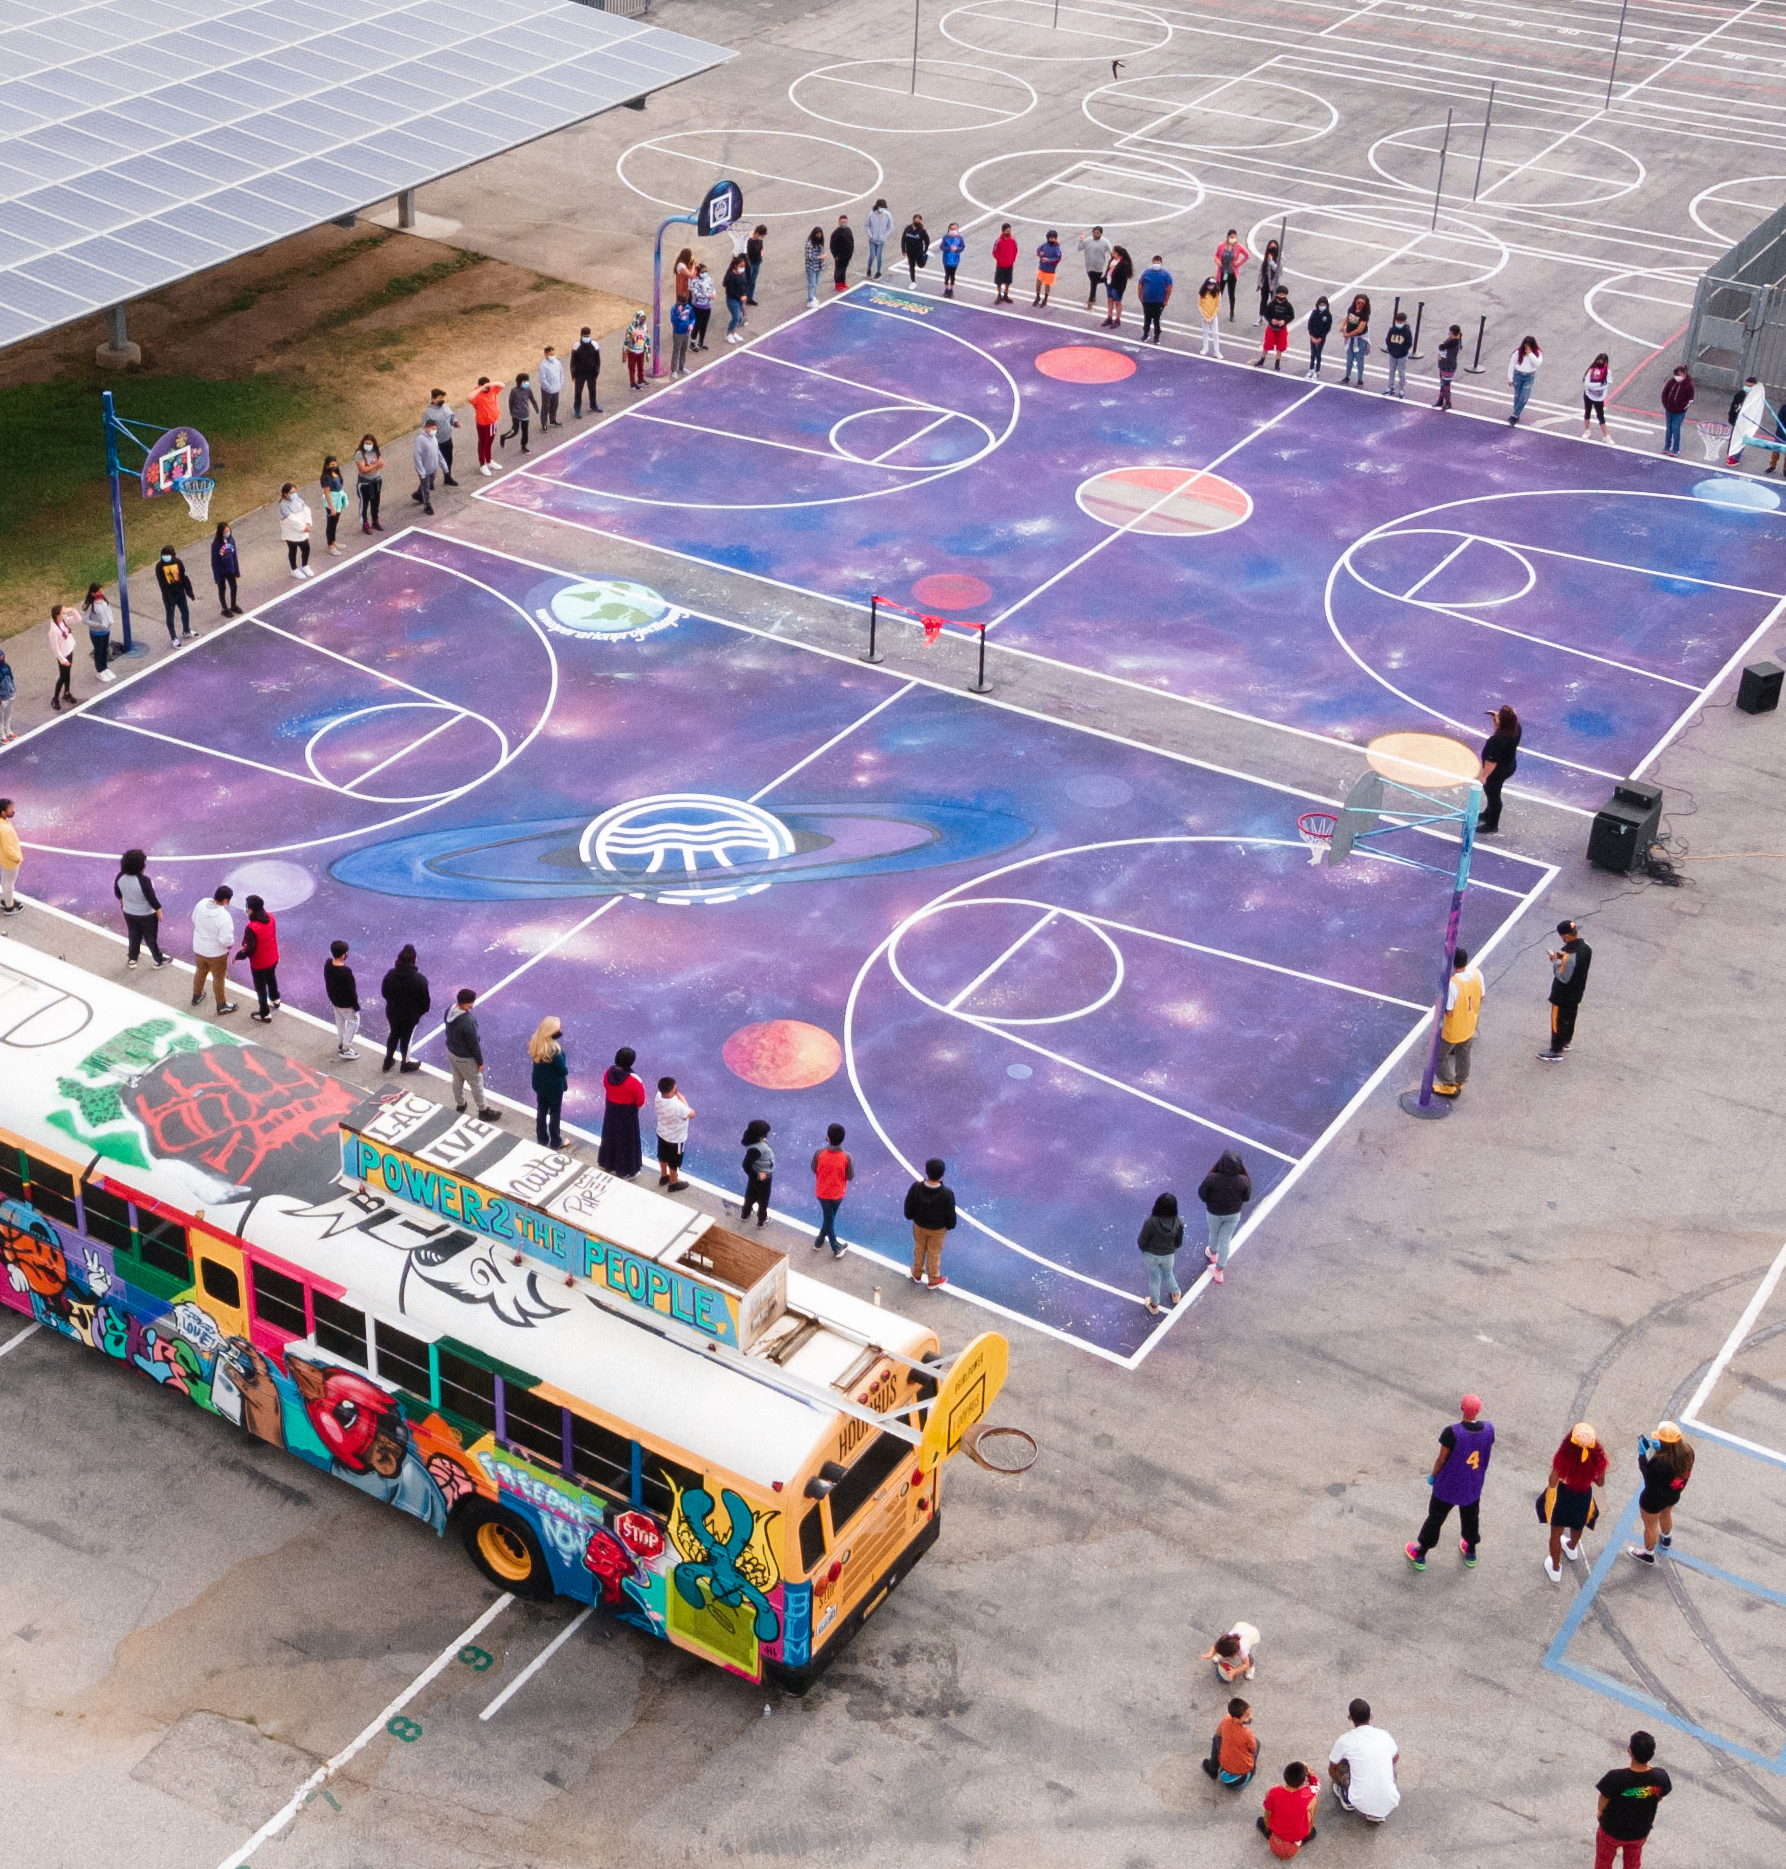 The Galaxy Court is Born